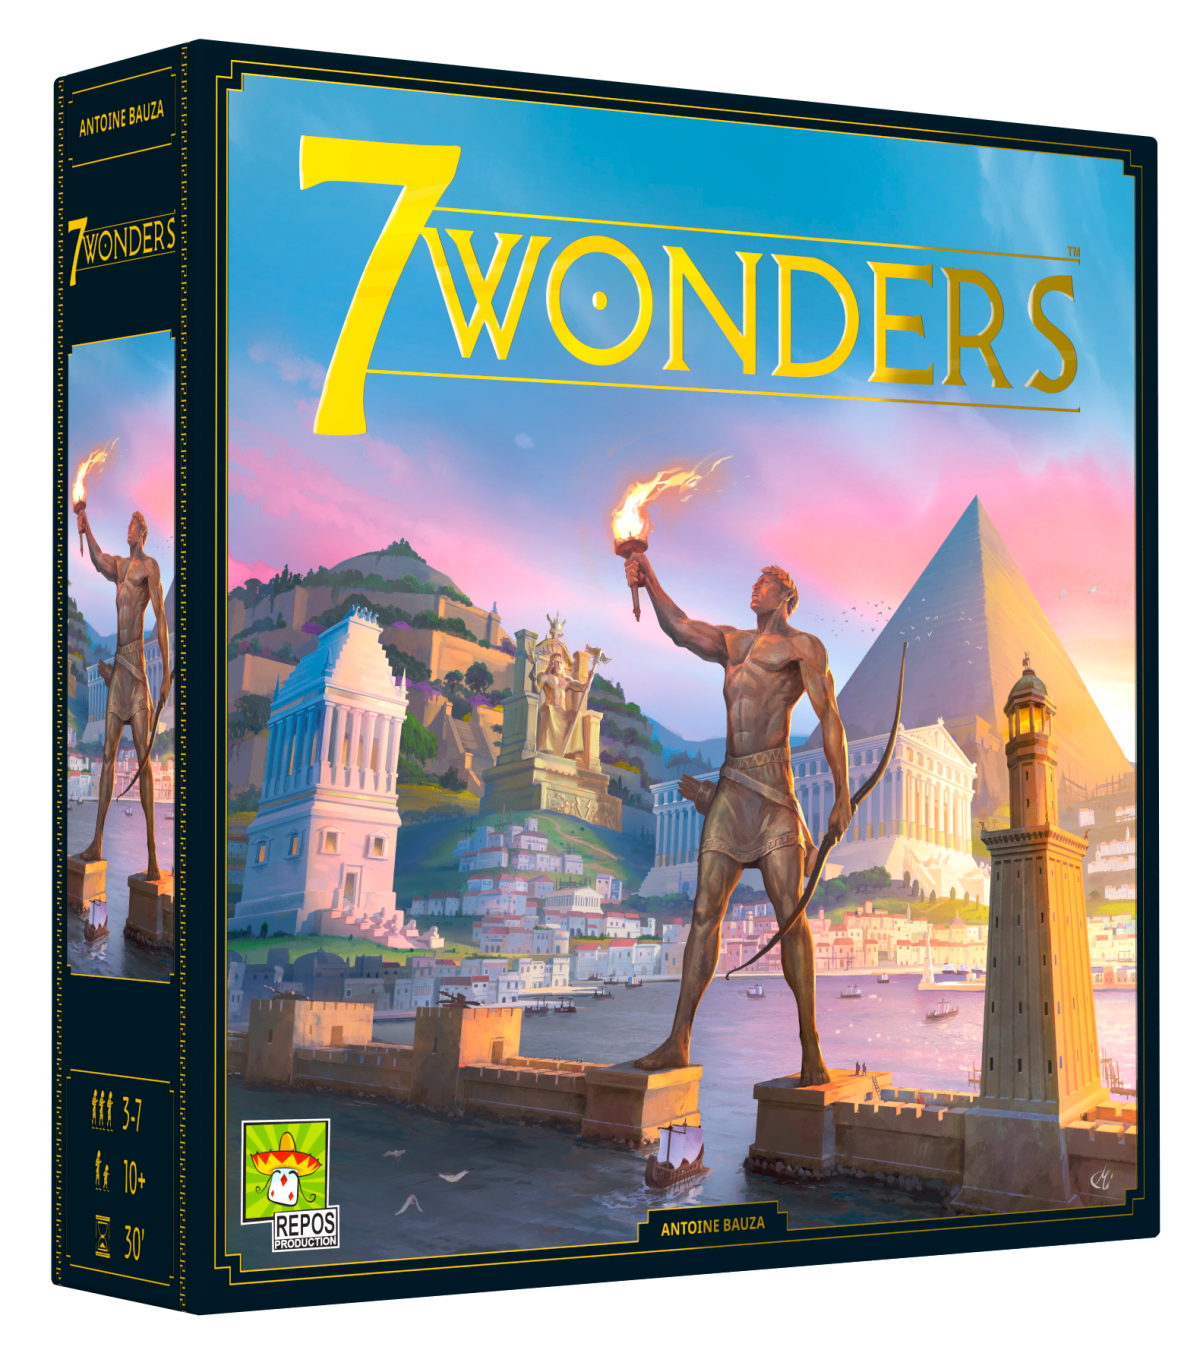 7 Wonders is also: